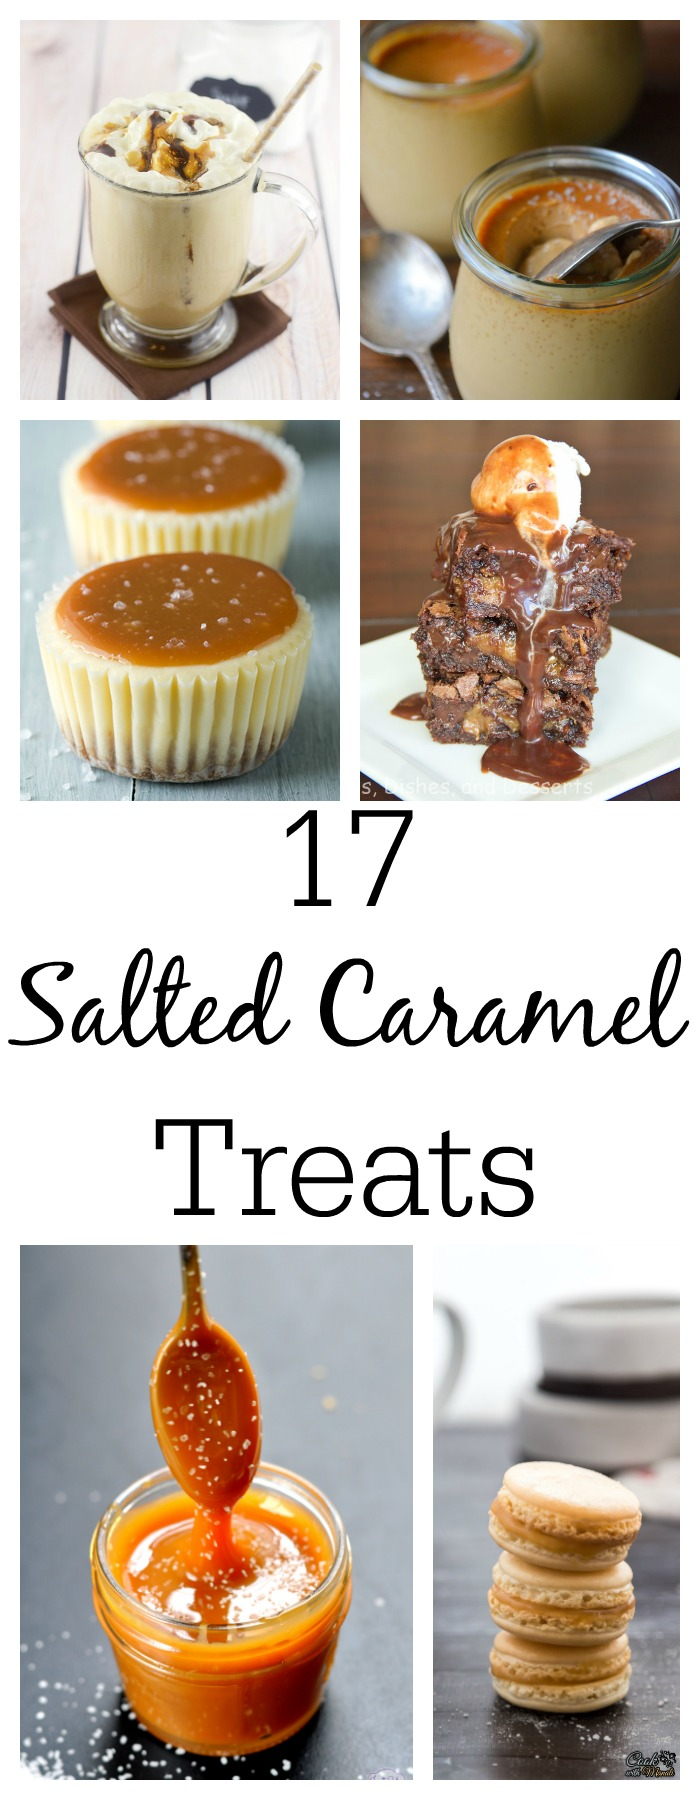 17 Salted Caramel Treats that Will Make You Forget Your Diet